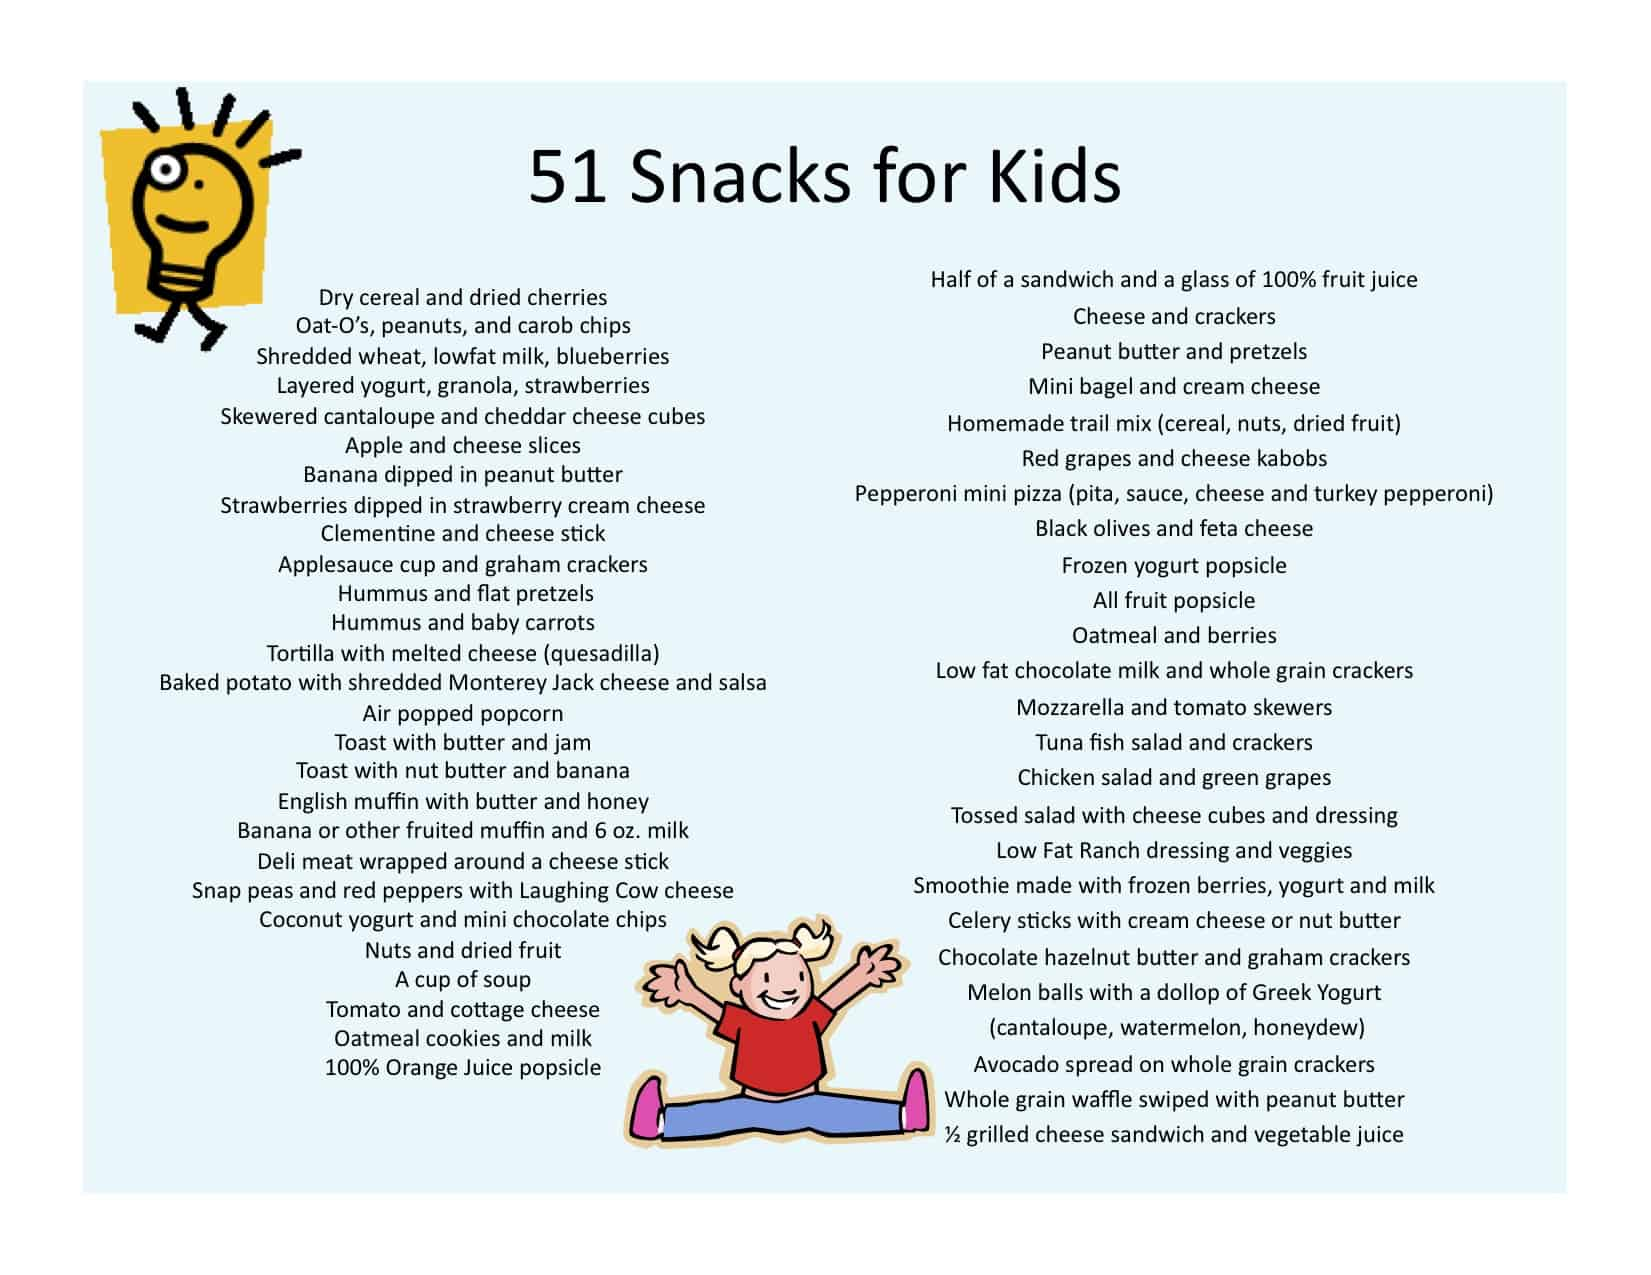 51 Snack Ideas For Kids